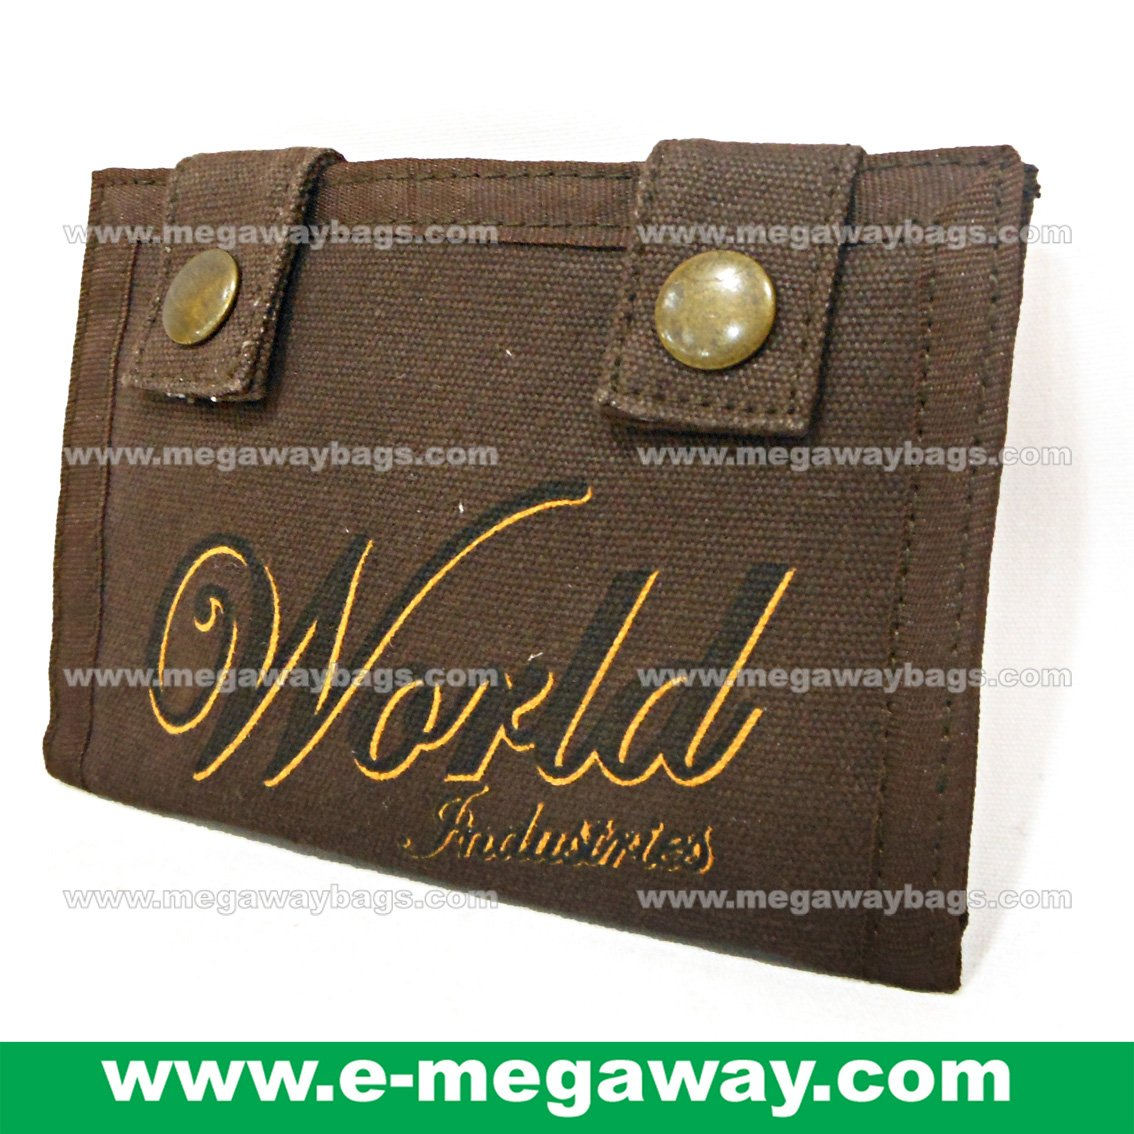 Unisex Purses Wallet w Studs Loop Coins Zip Pouch Bank Cards Money MegawayBags #CC-1058